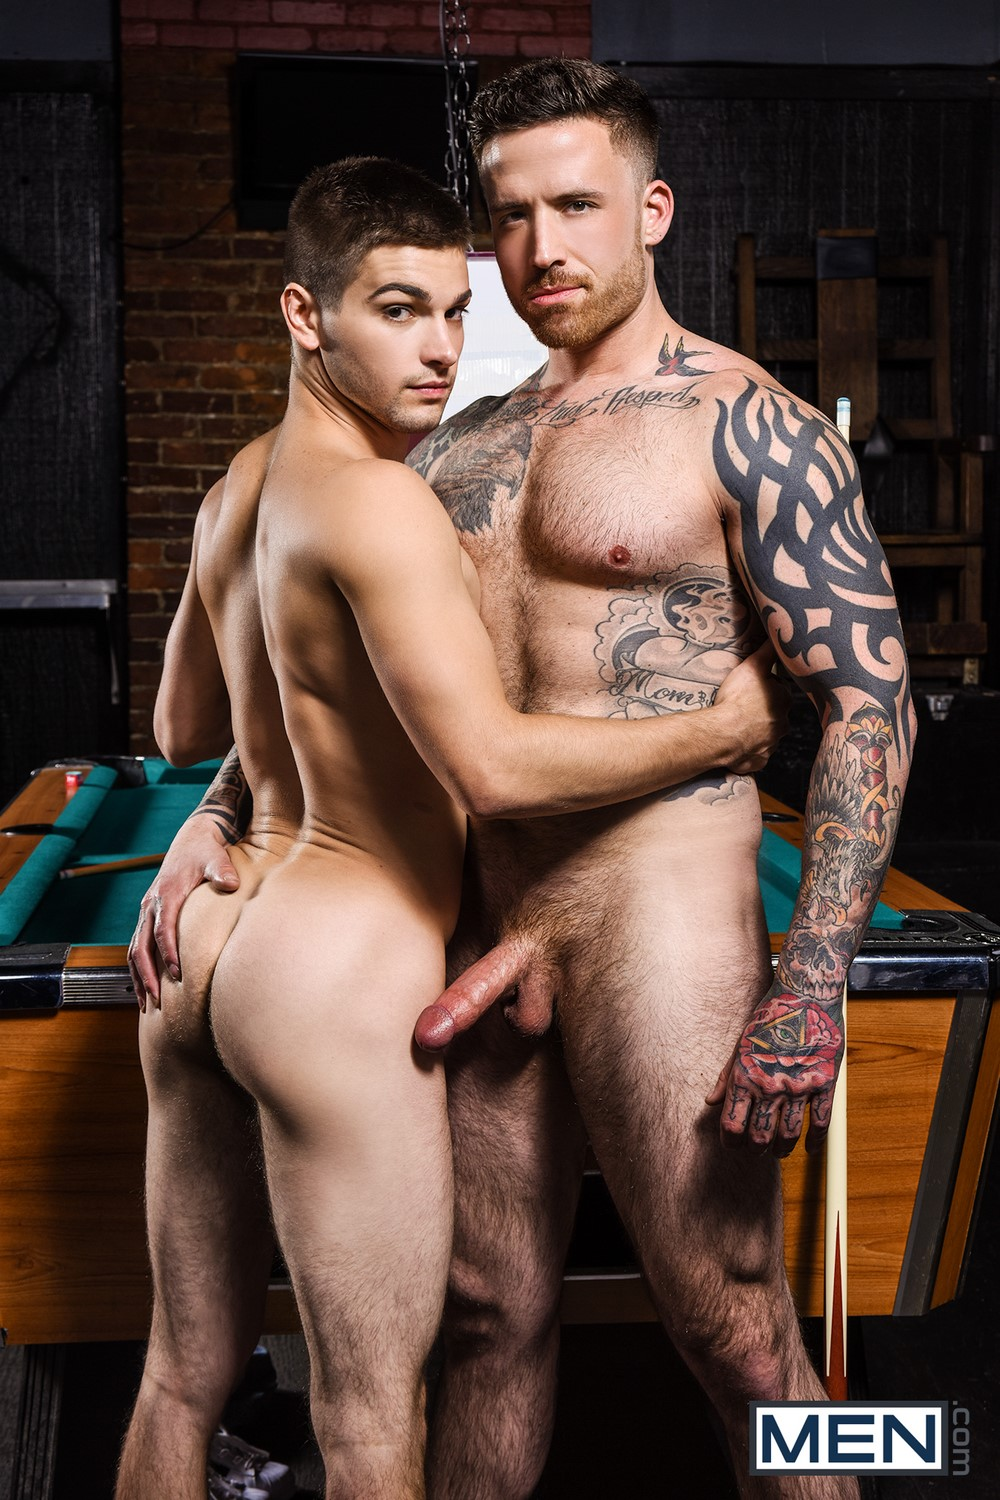 Pool dick johnny rapid and jordan levine ass love